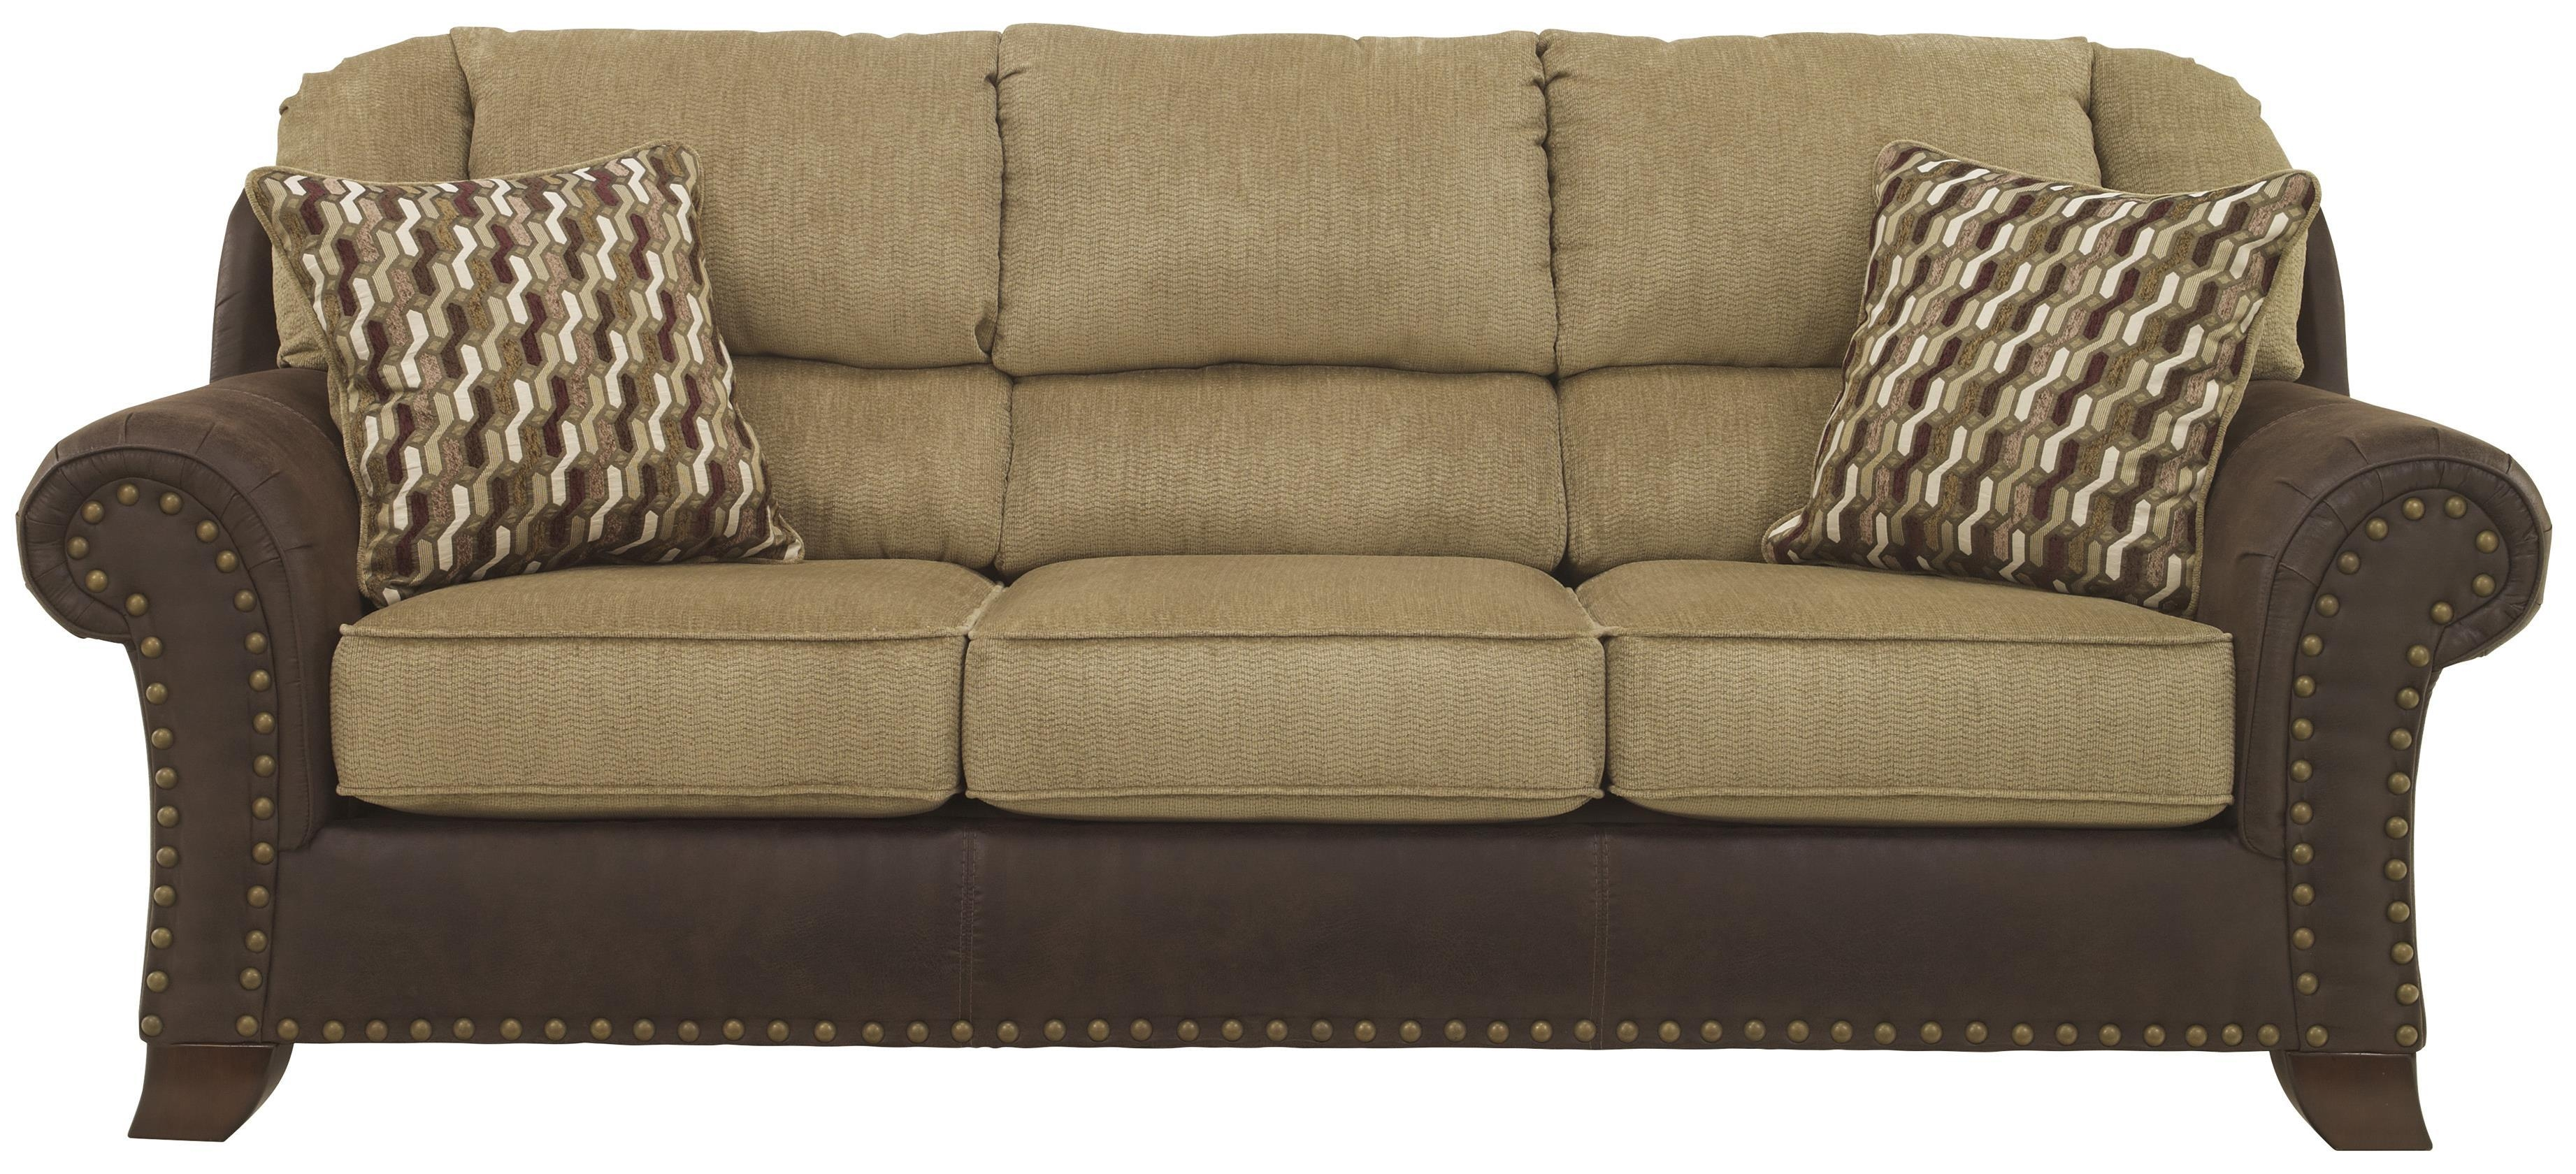 Two Tone Sofa With Chenille Fabric/faux Leather Upholstery In Benchcraft Leather Sofas (View 10 of 20)